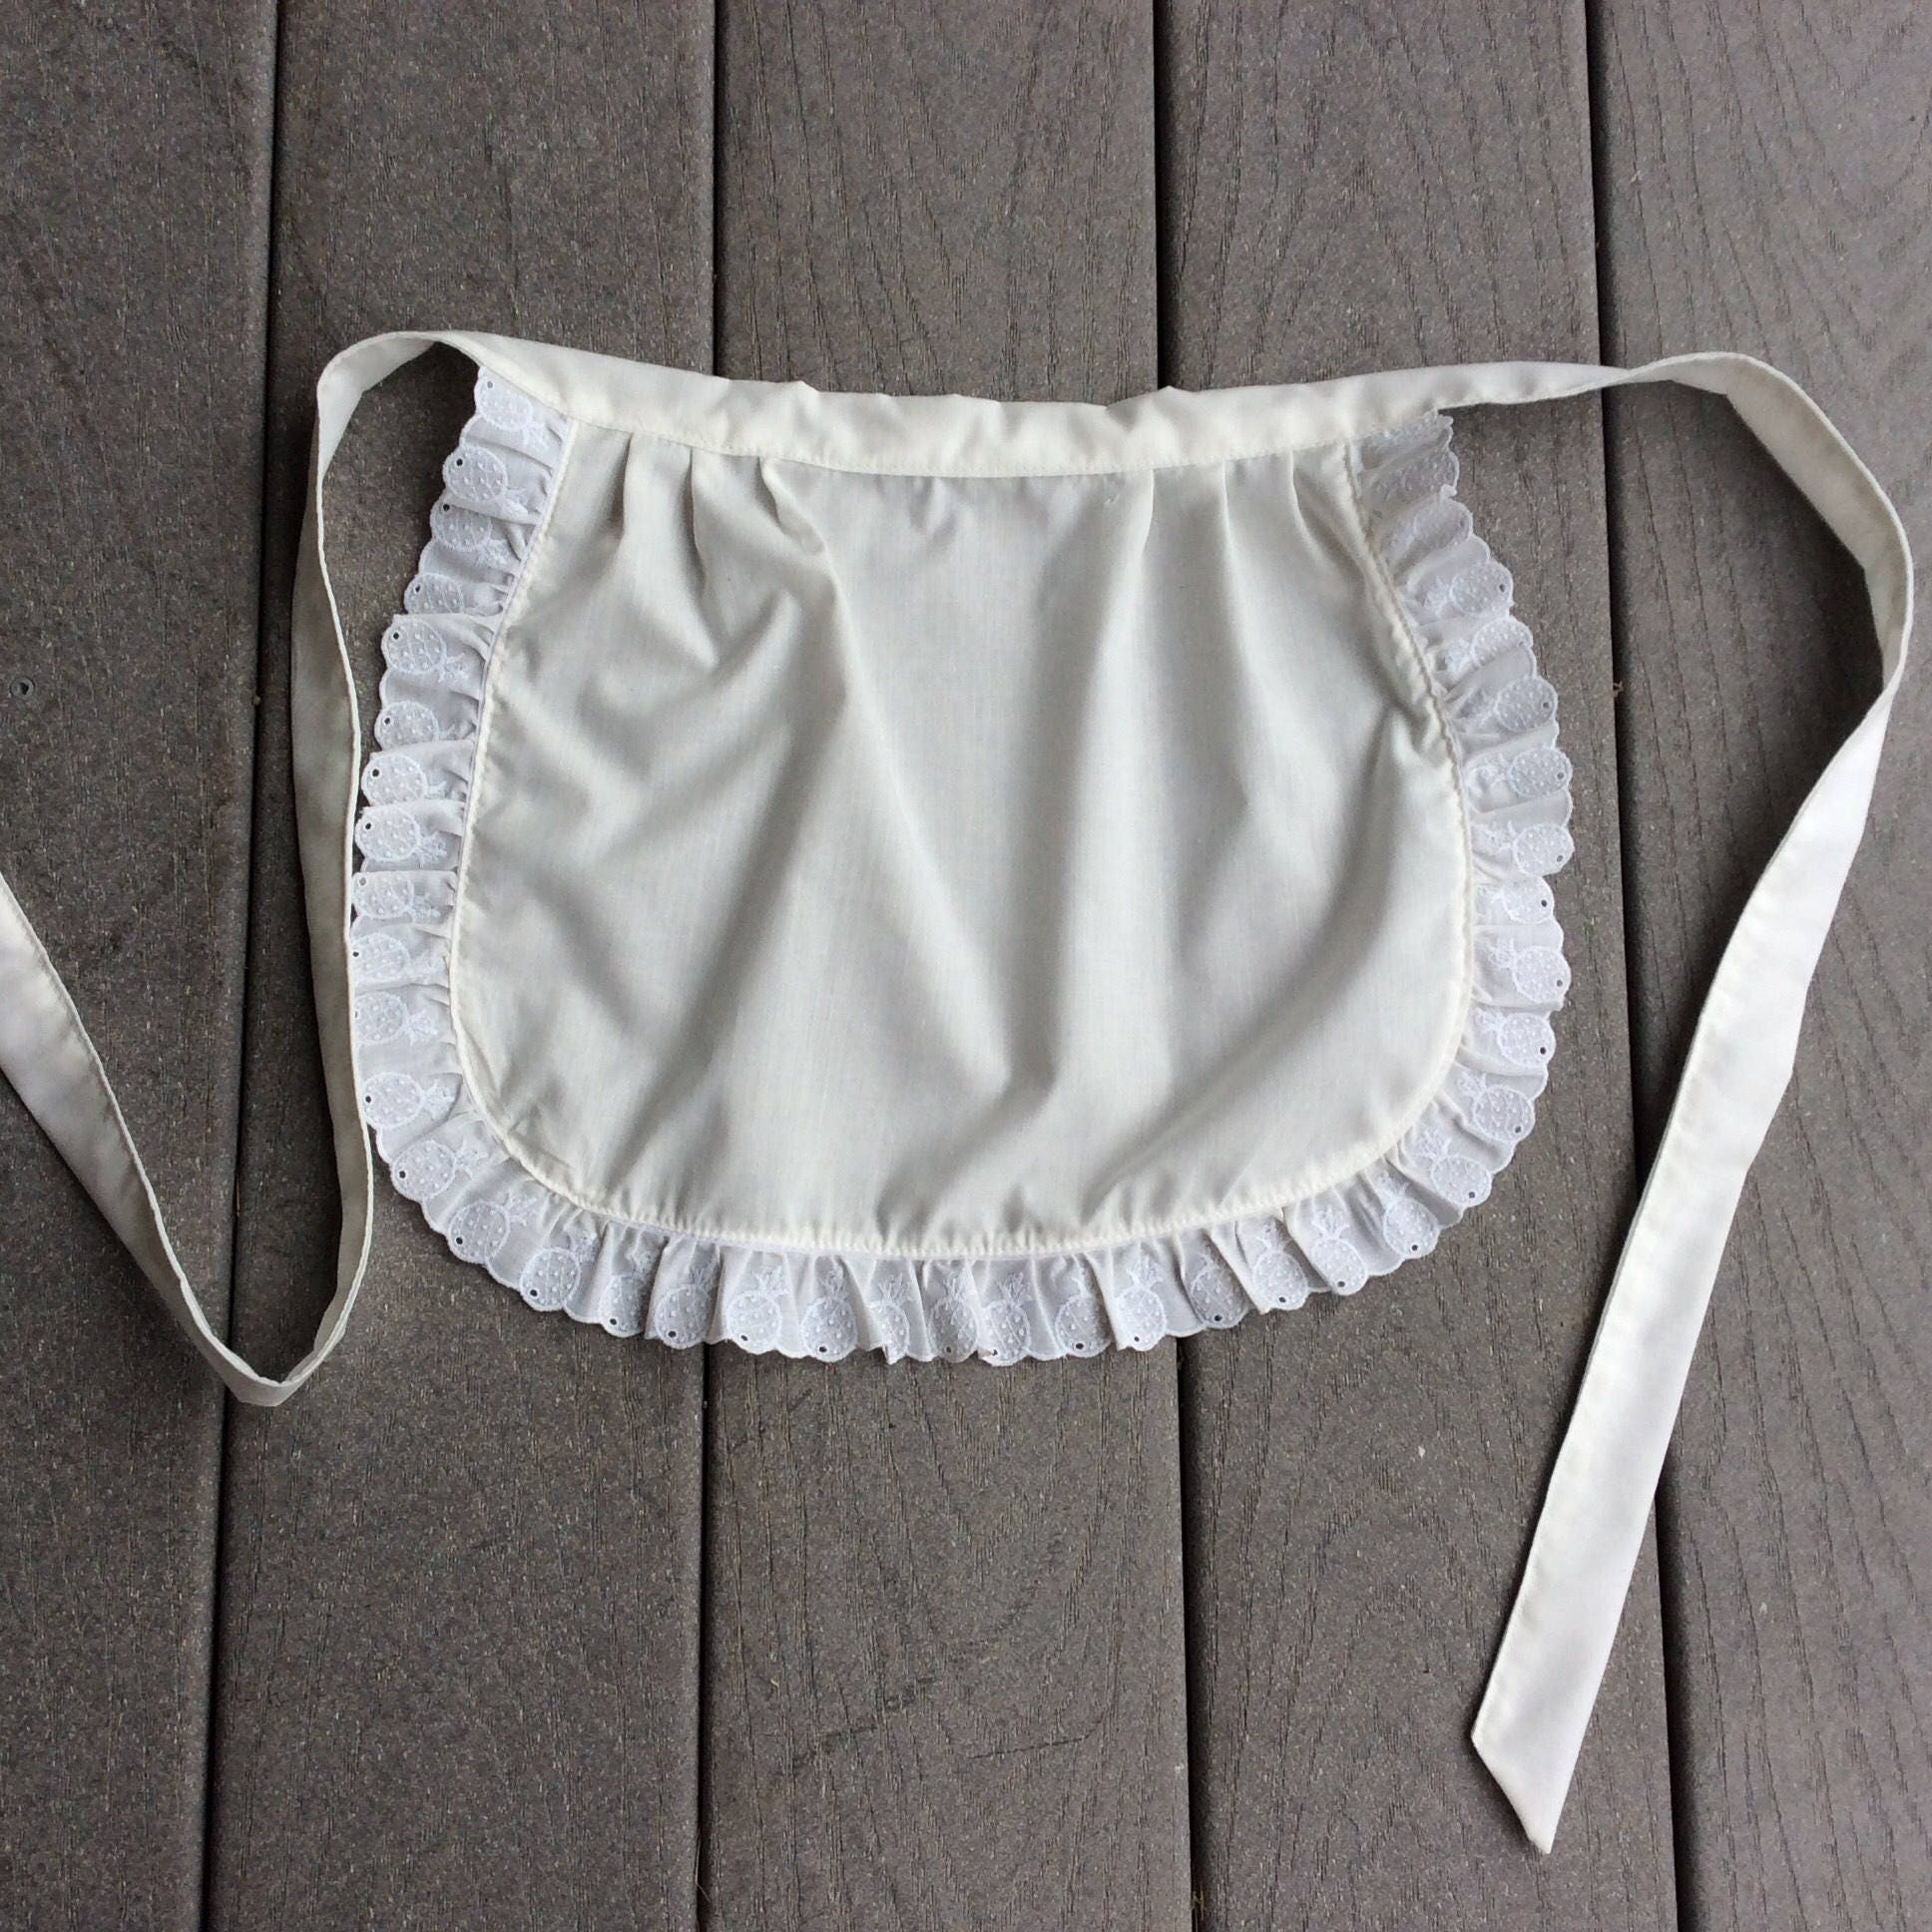 White frilly apron nz -  Zoom